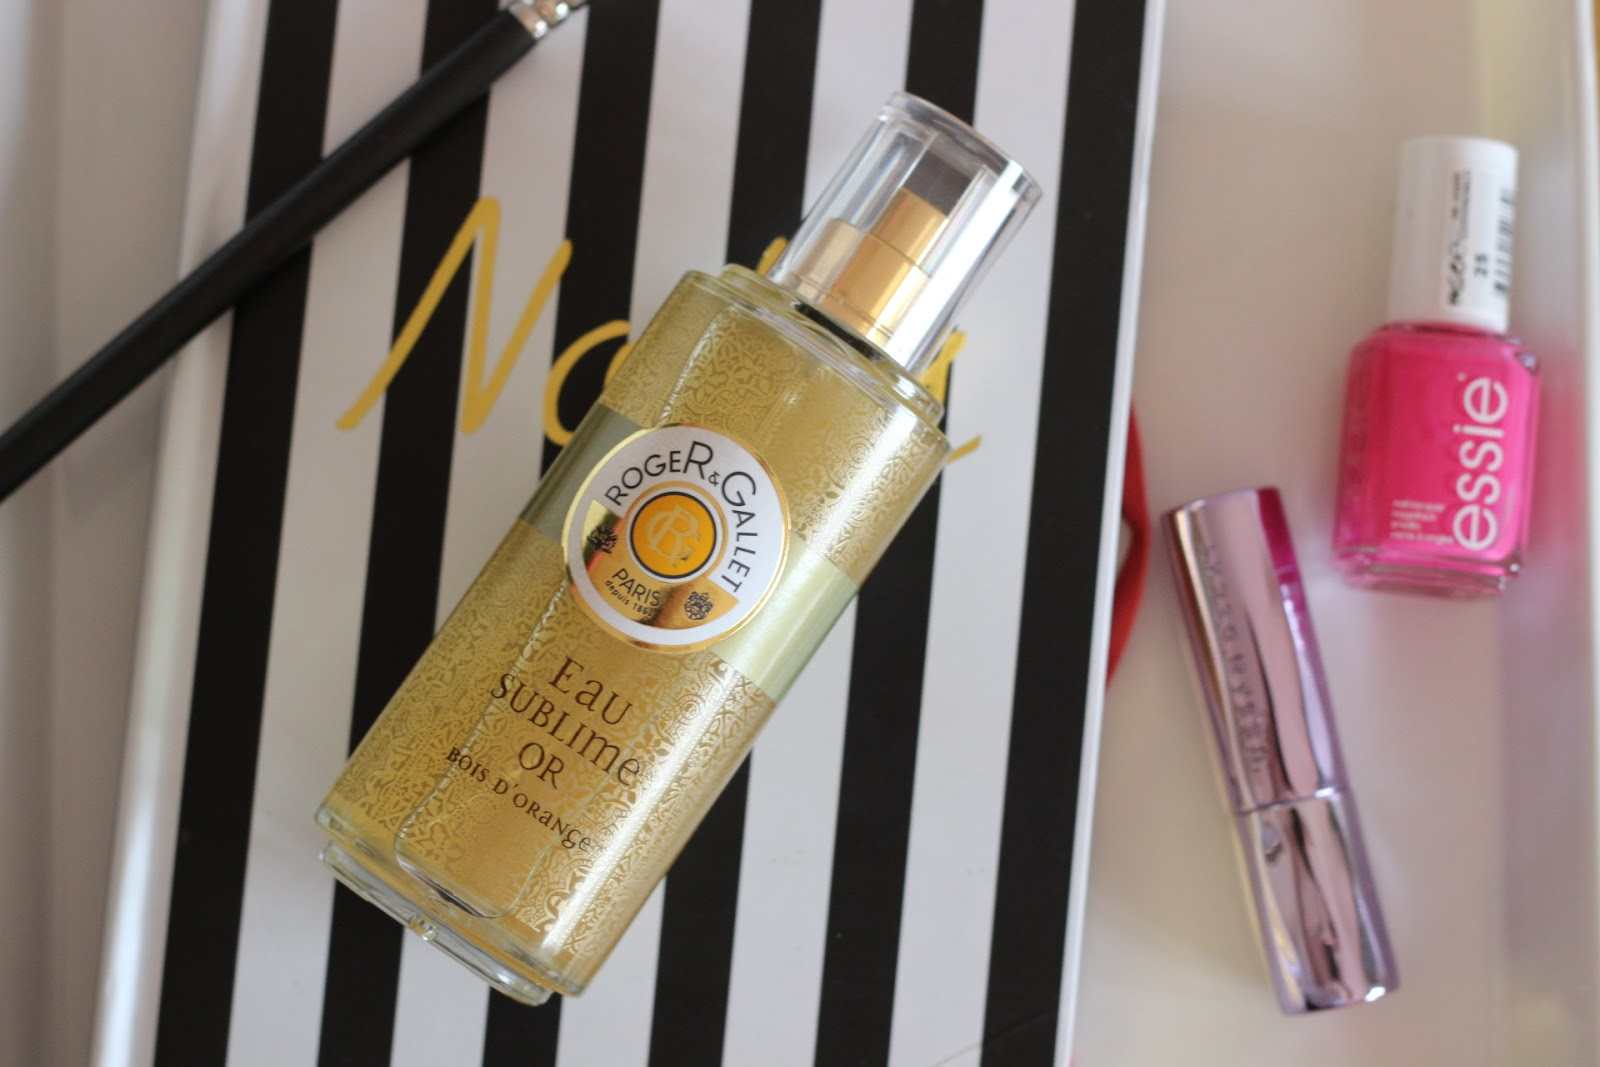 Roger & Gallet Eau Sublime Or Bois d'Orange